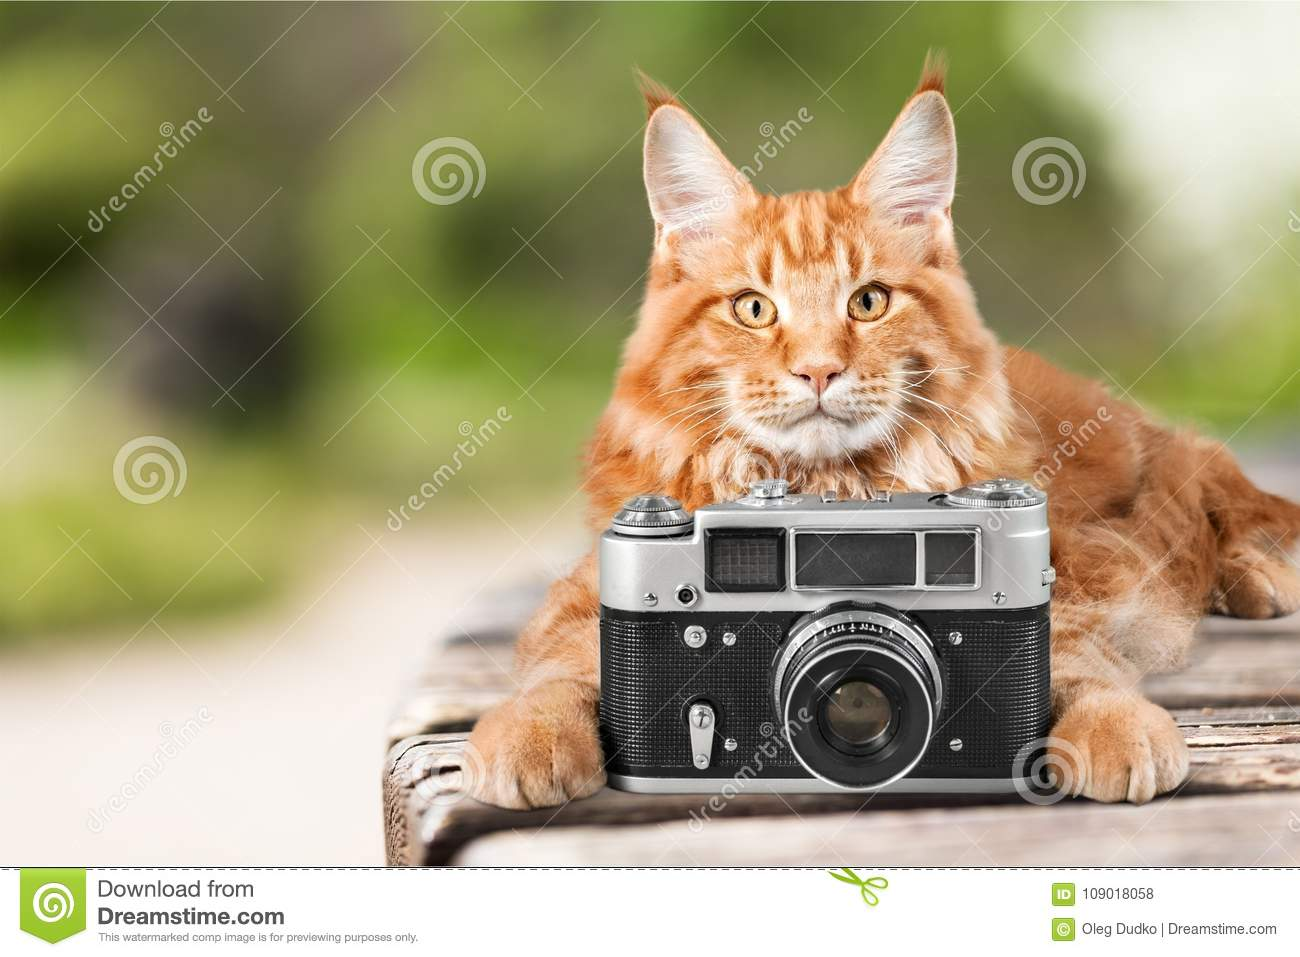 Adorable red cat with camera on light background